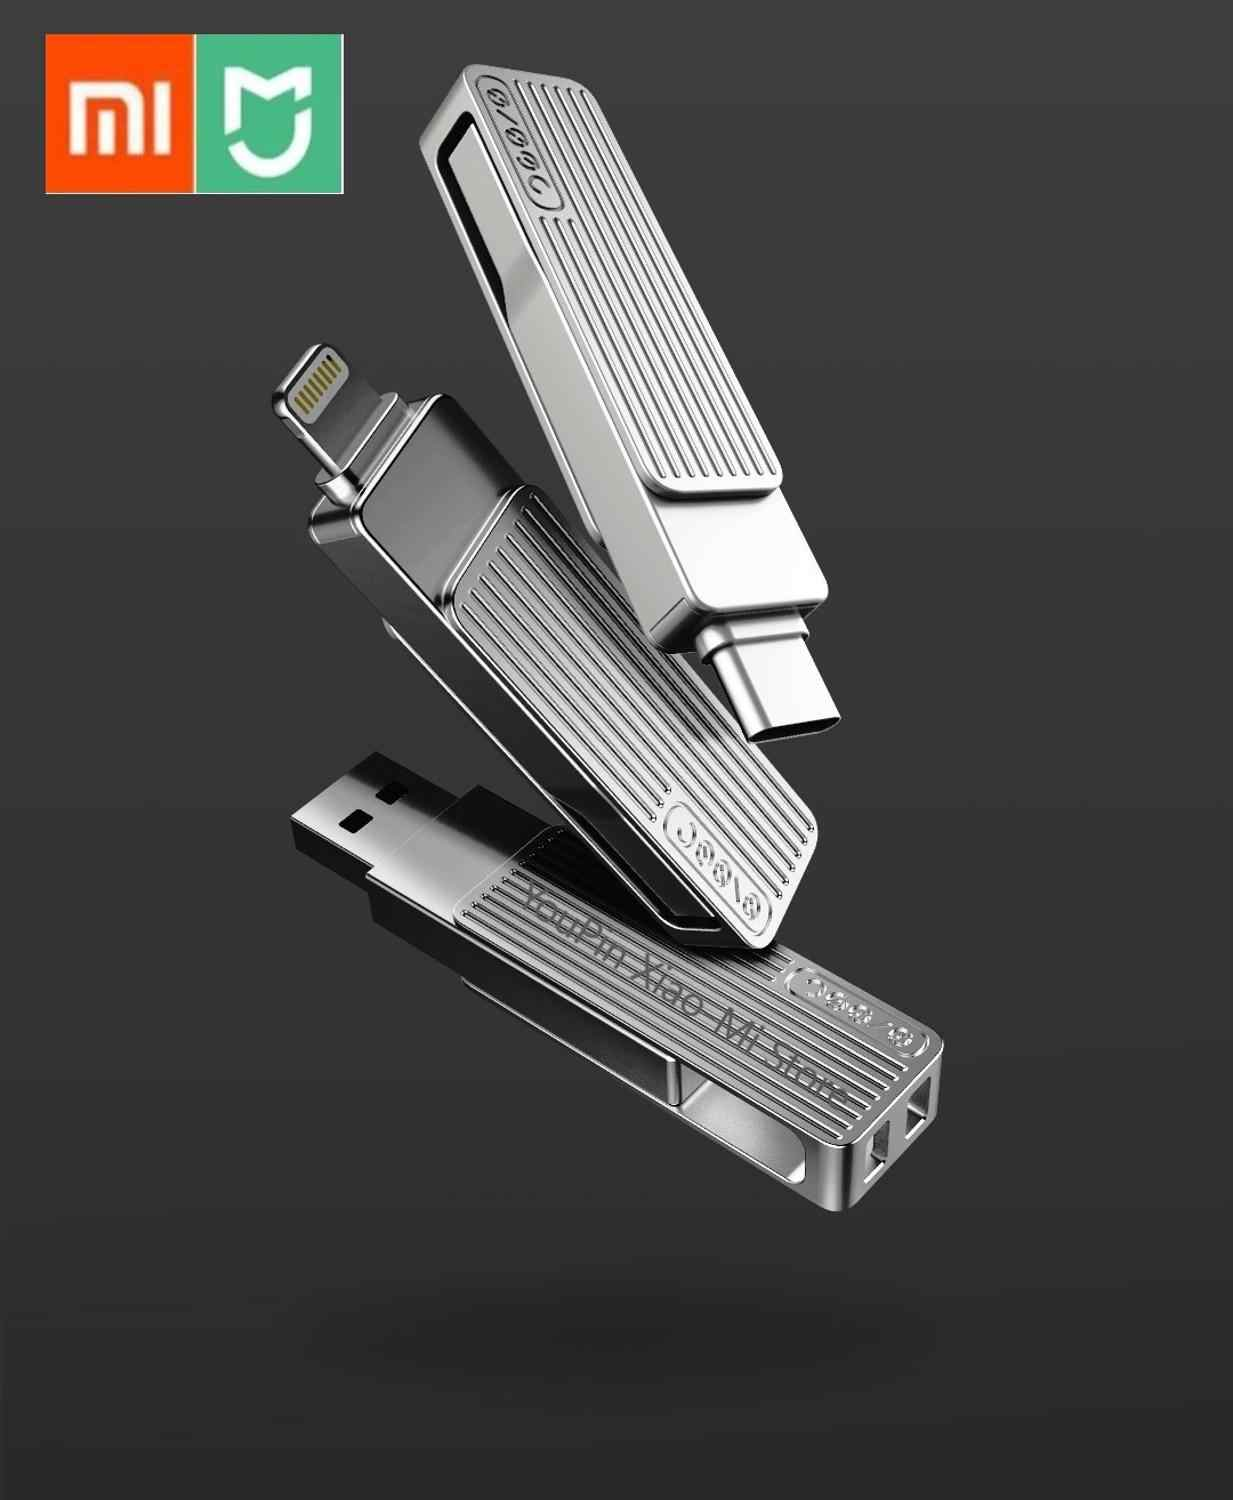 Xiaomi Jessis U Disk 32GB 64GB 128GB Recorder Type-C Dual USB Flash Drive OTG USB 3.1 USB Stick Voor Telefoon Tablet PC MAC